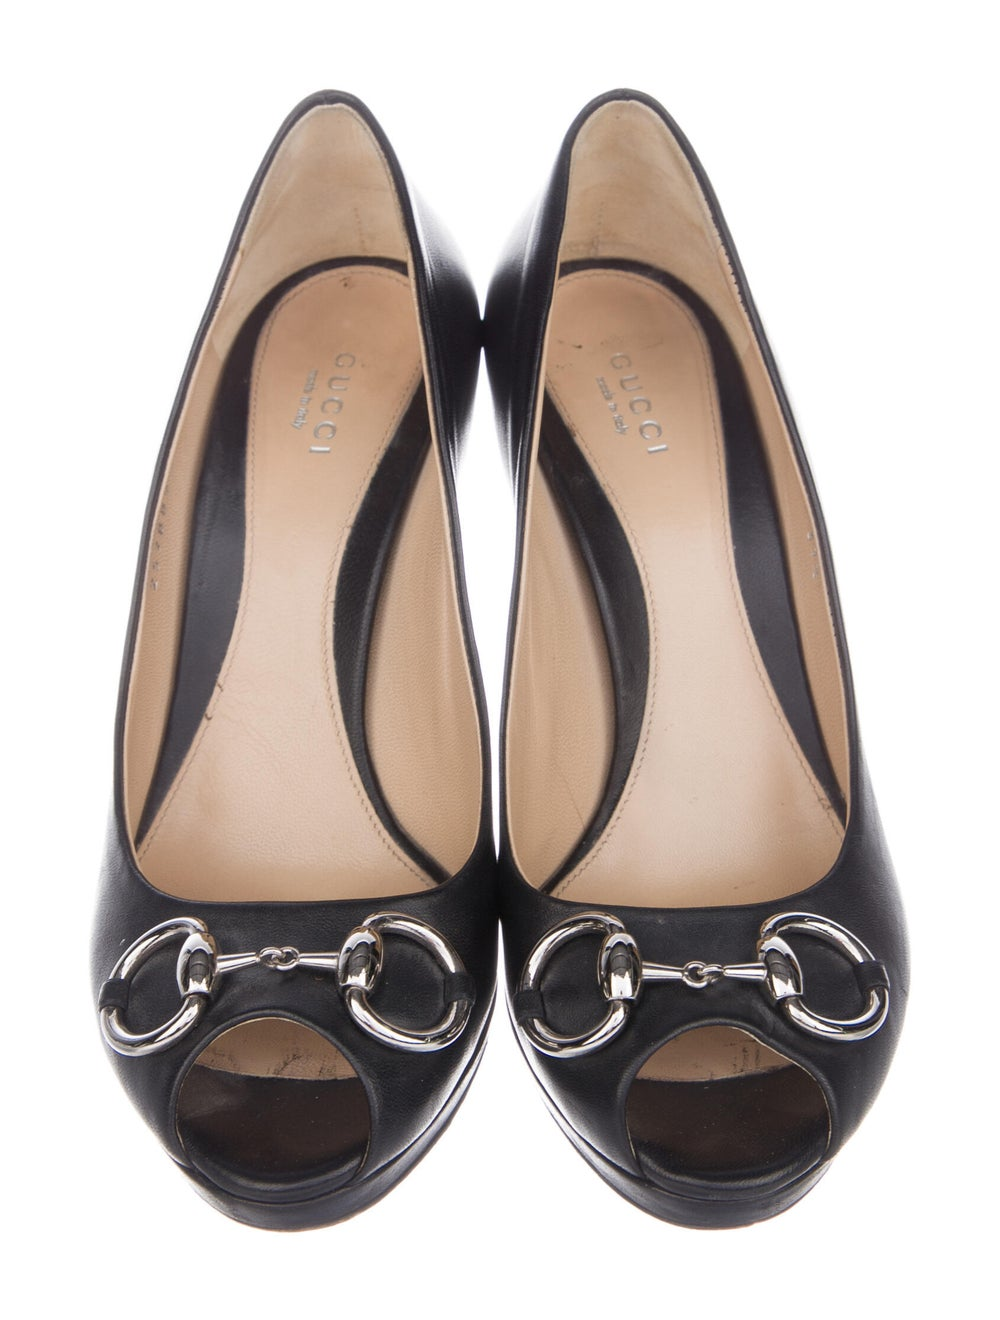 Gucci Horsebit Accent Leather Pumps Black - image 3